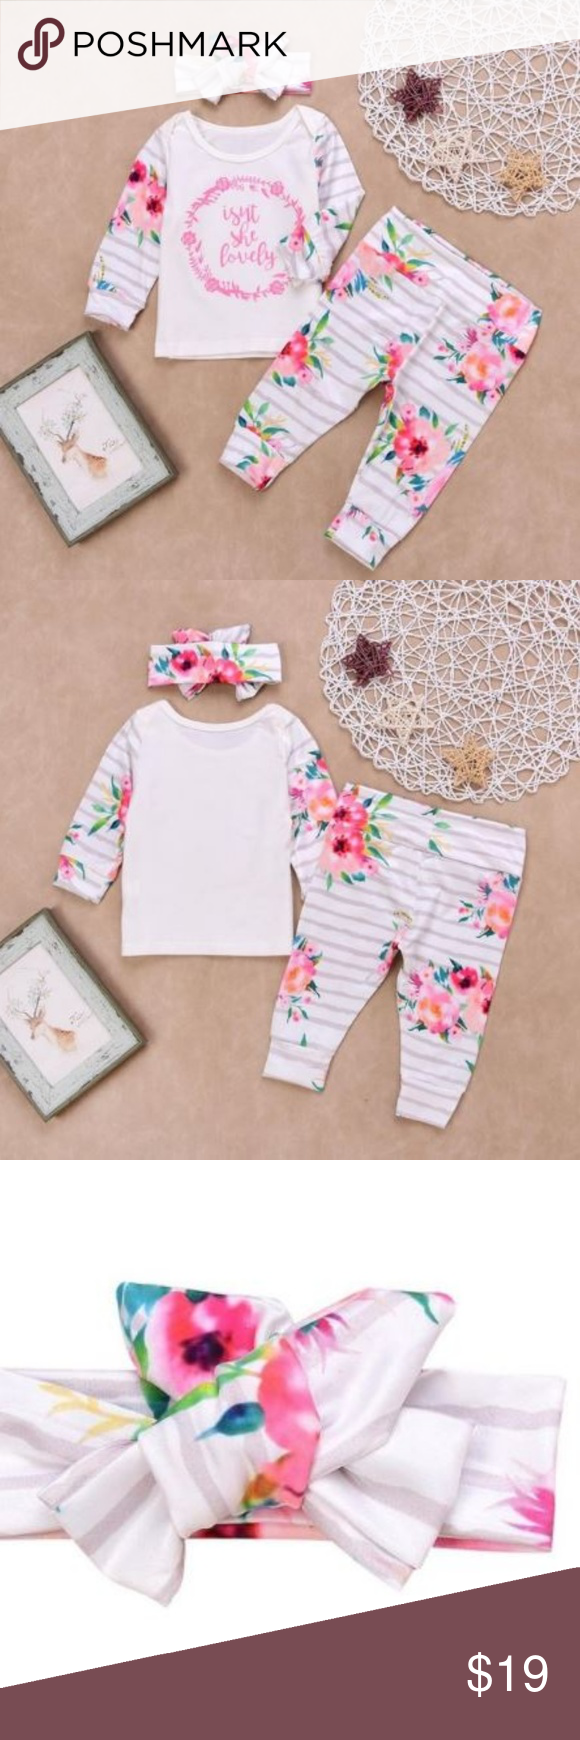 Hp Boutique Baby Girl Isn T She Lovely Baby Girl Boutique Baby Boutique New Baby Products